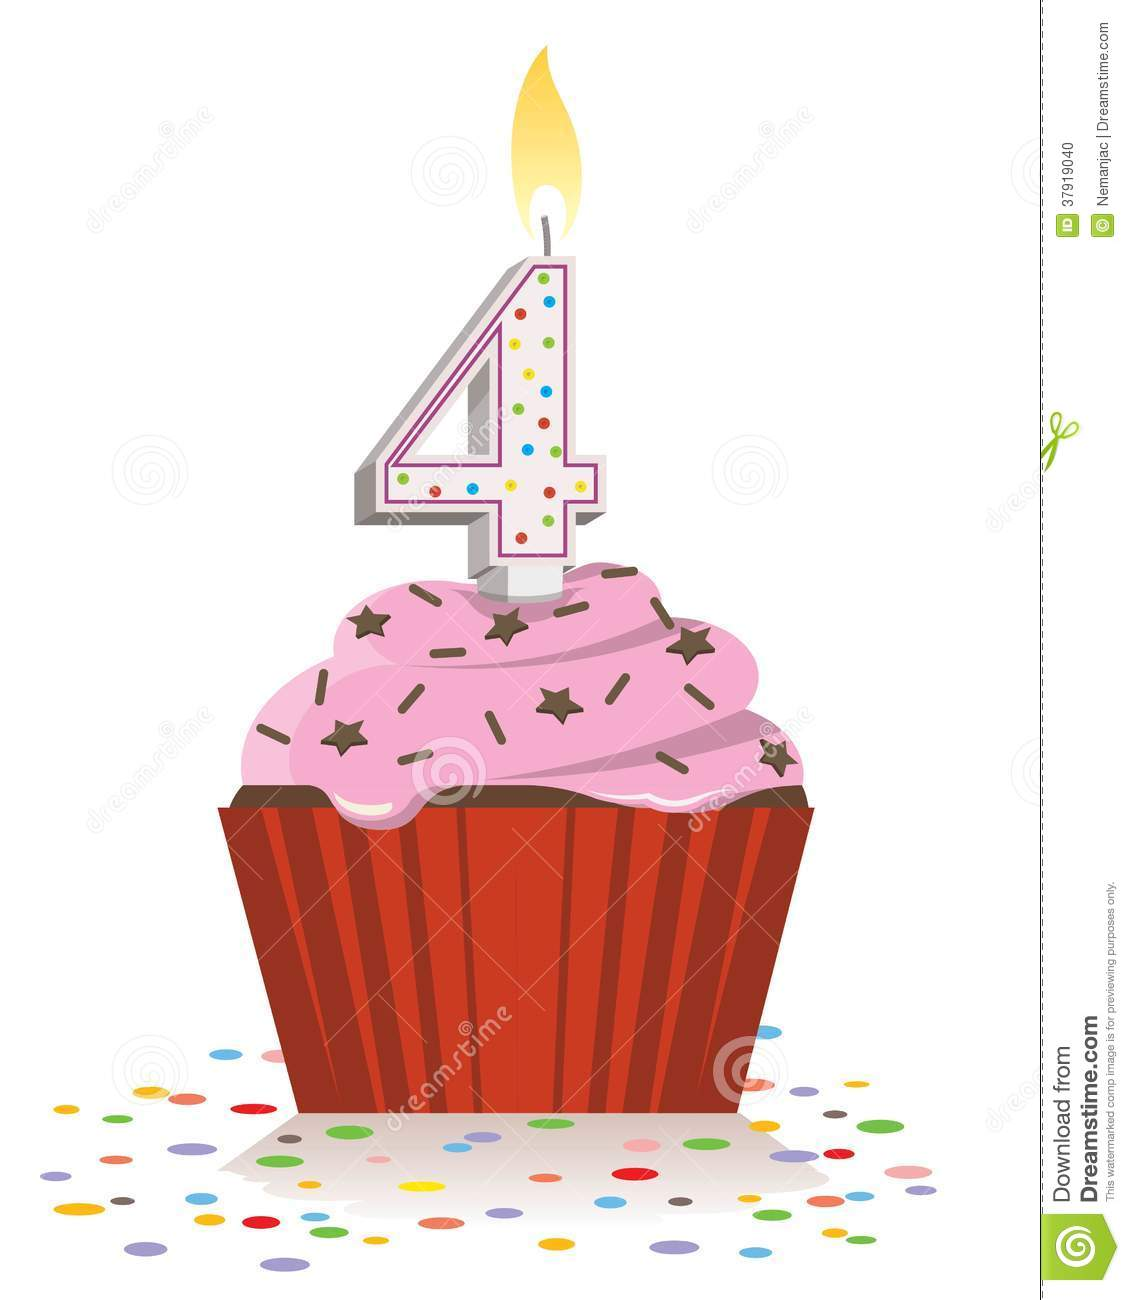 4th birthday clipart ; fourth-birthday-cupcake-lit-candle-shape-number-four-isolated-white-background-37919040